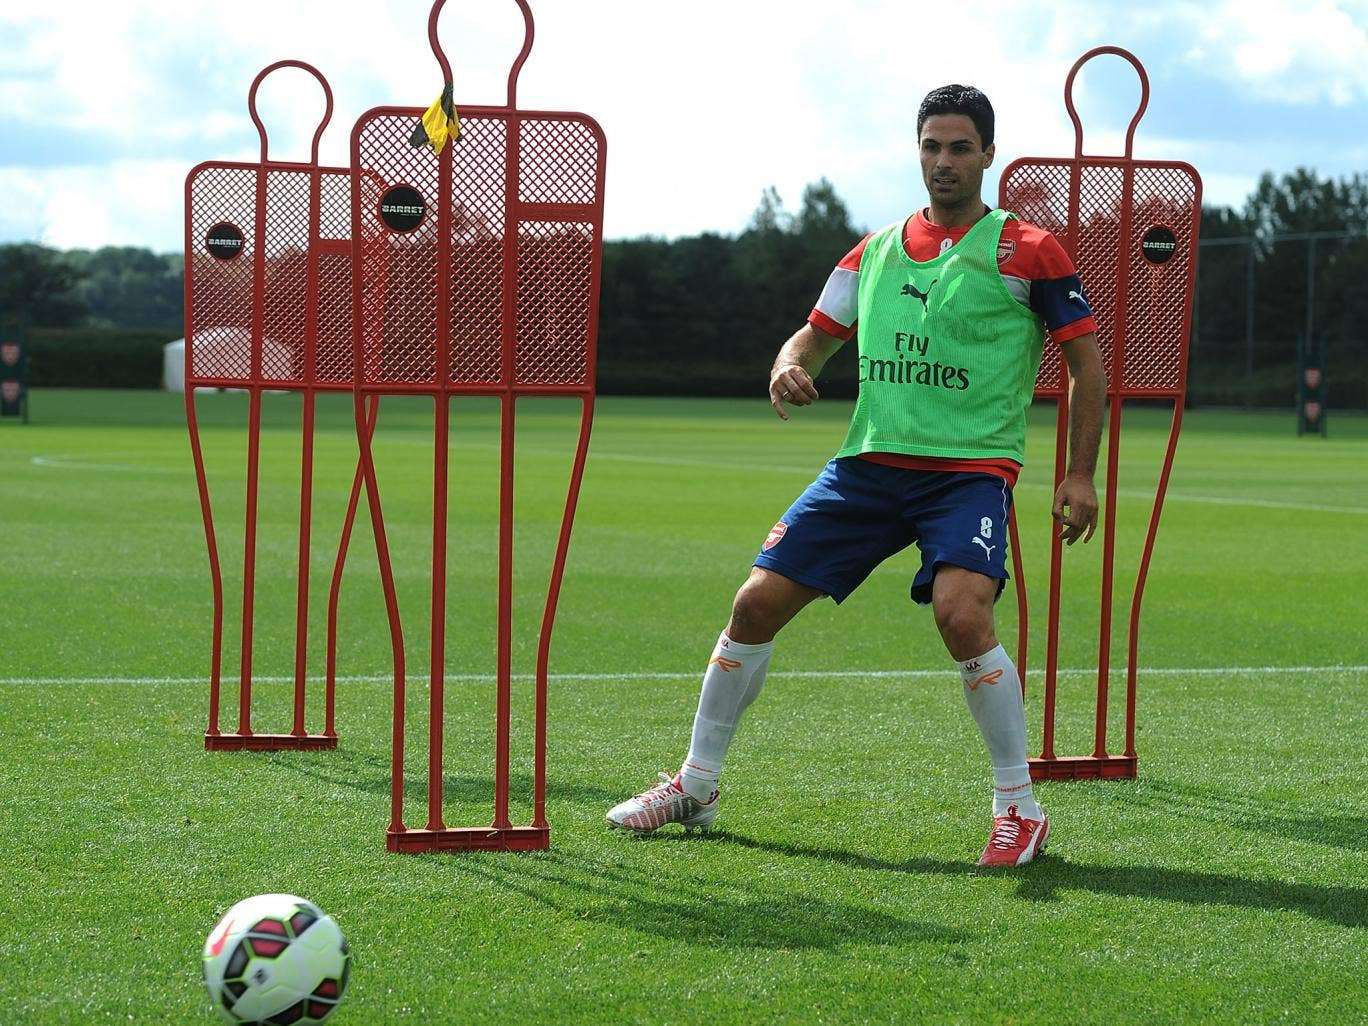 Mikel Arteta is set to be named Arsenal captain